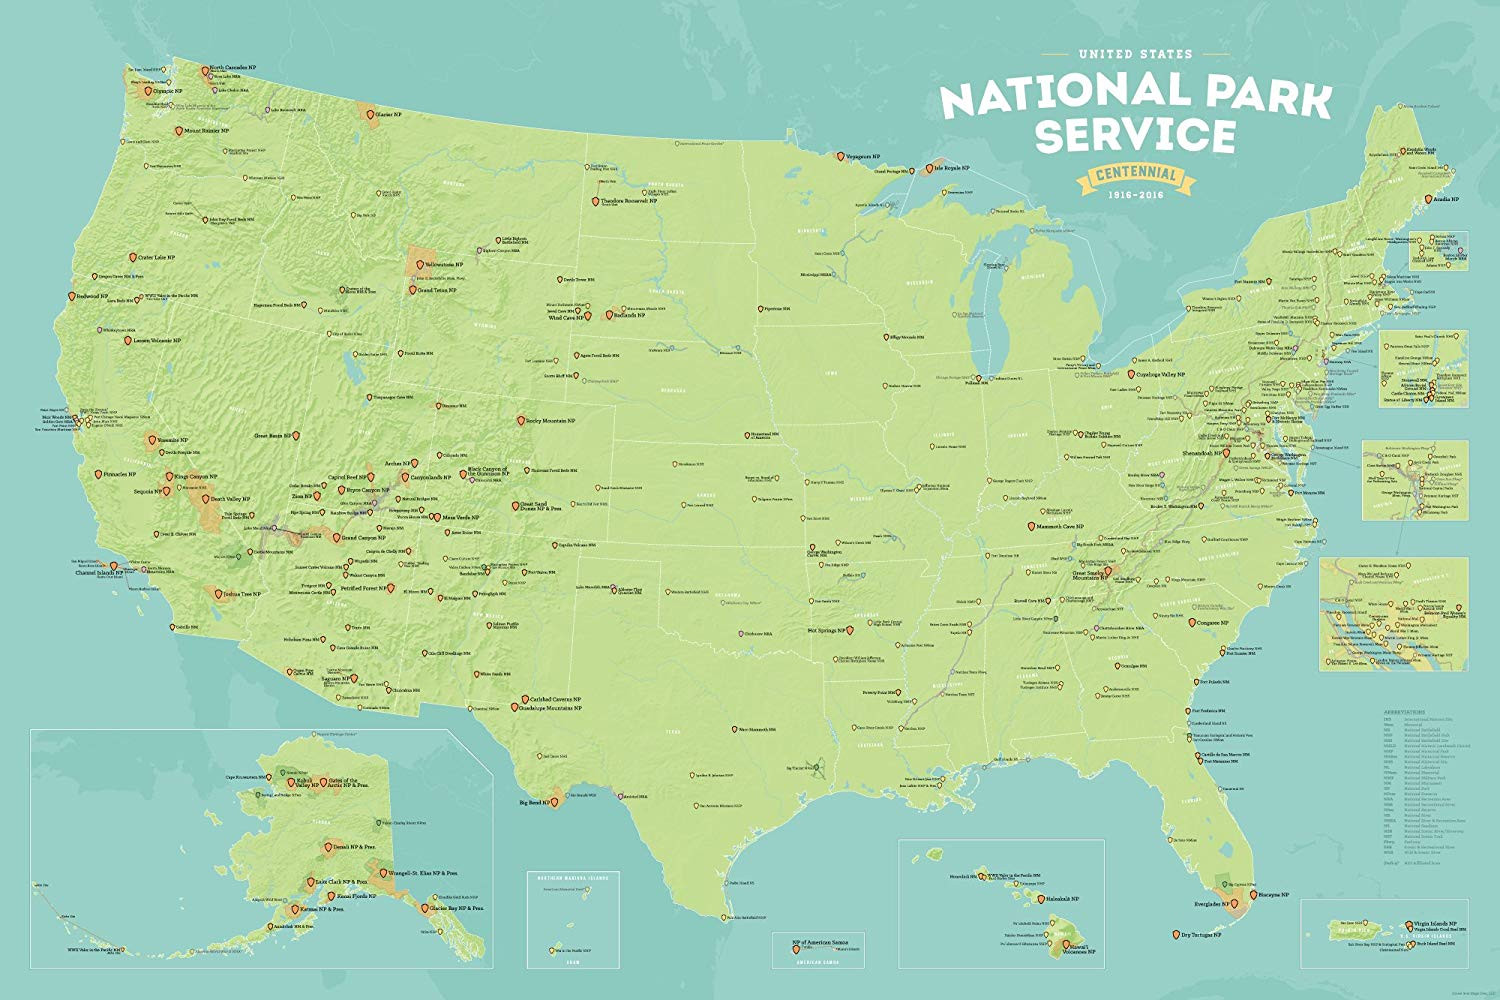 Printable Map National Parks Lovely Amazon National Park Service Centennial Map 24x36 Poster Tan